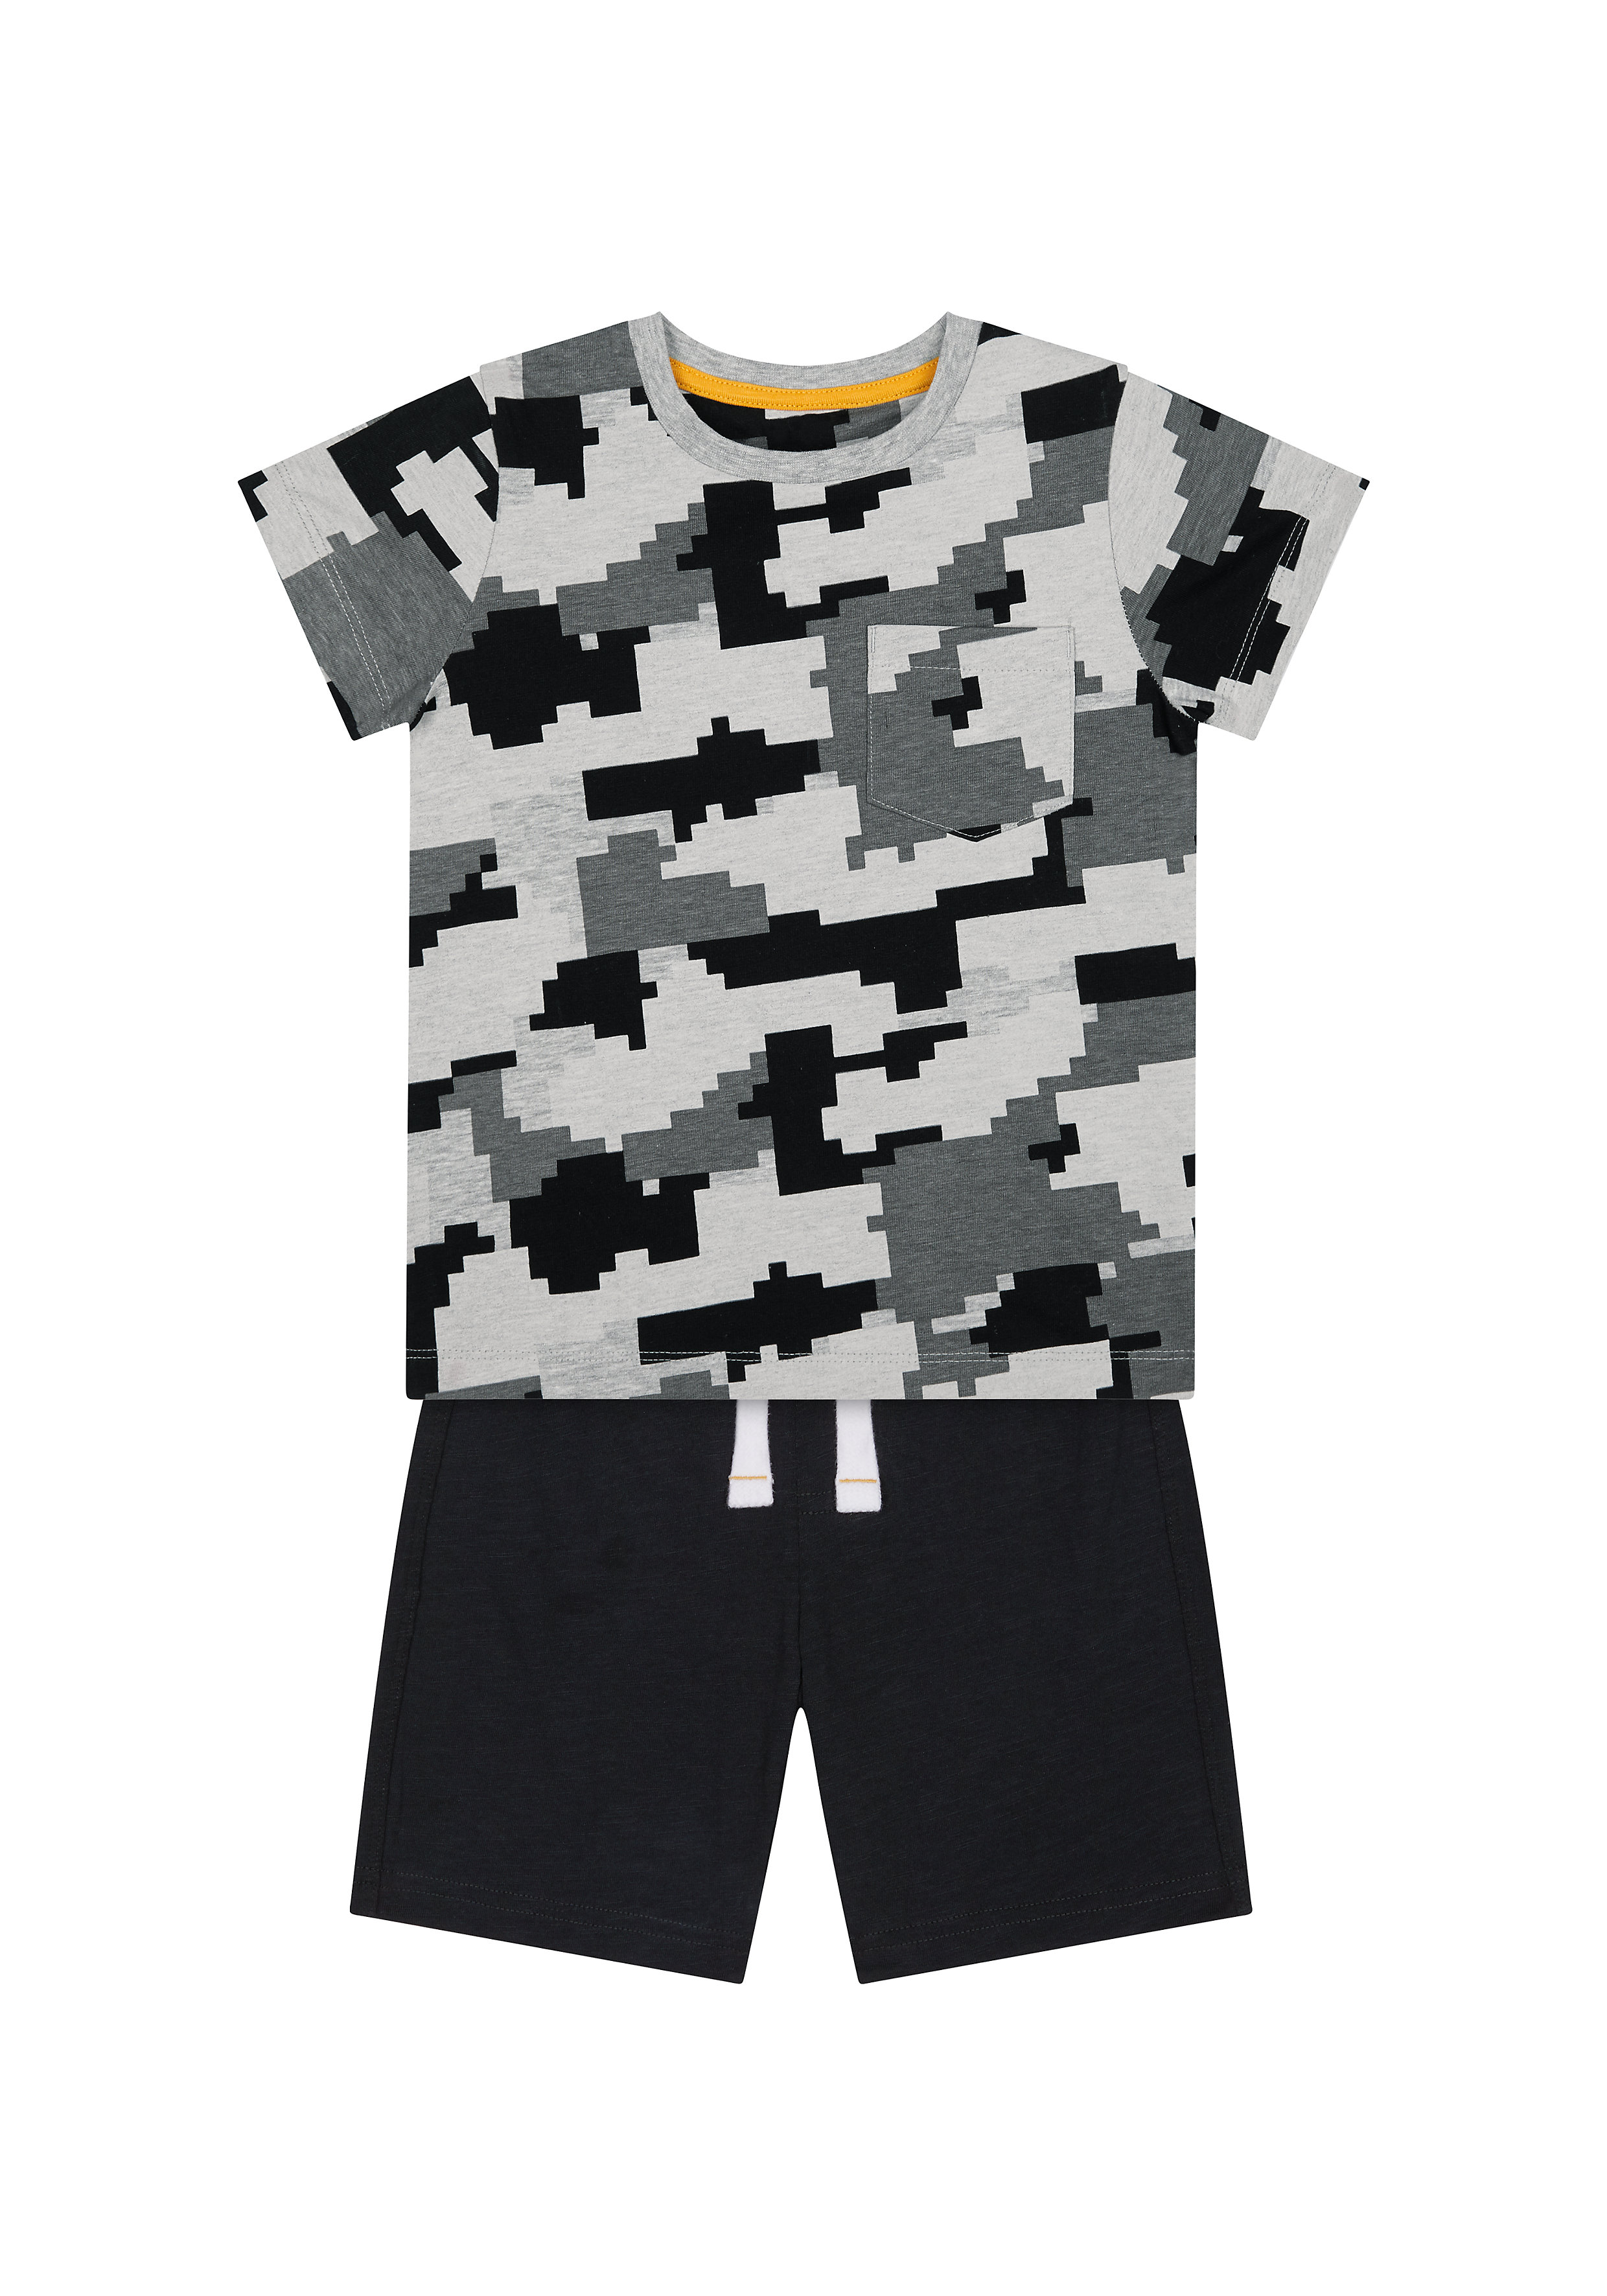 Mothercare | Boys Half Sleeves Shorts Sets  - Pack Of 2 - Multicolor